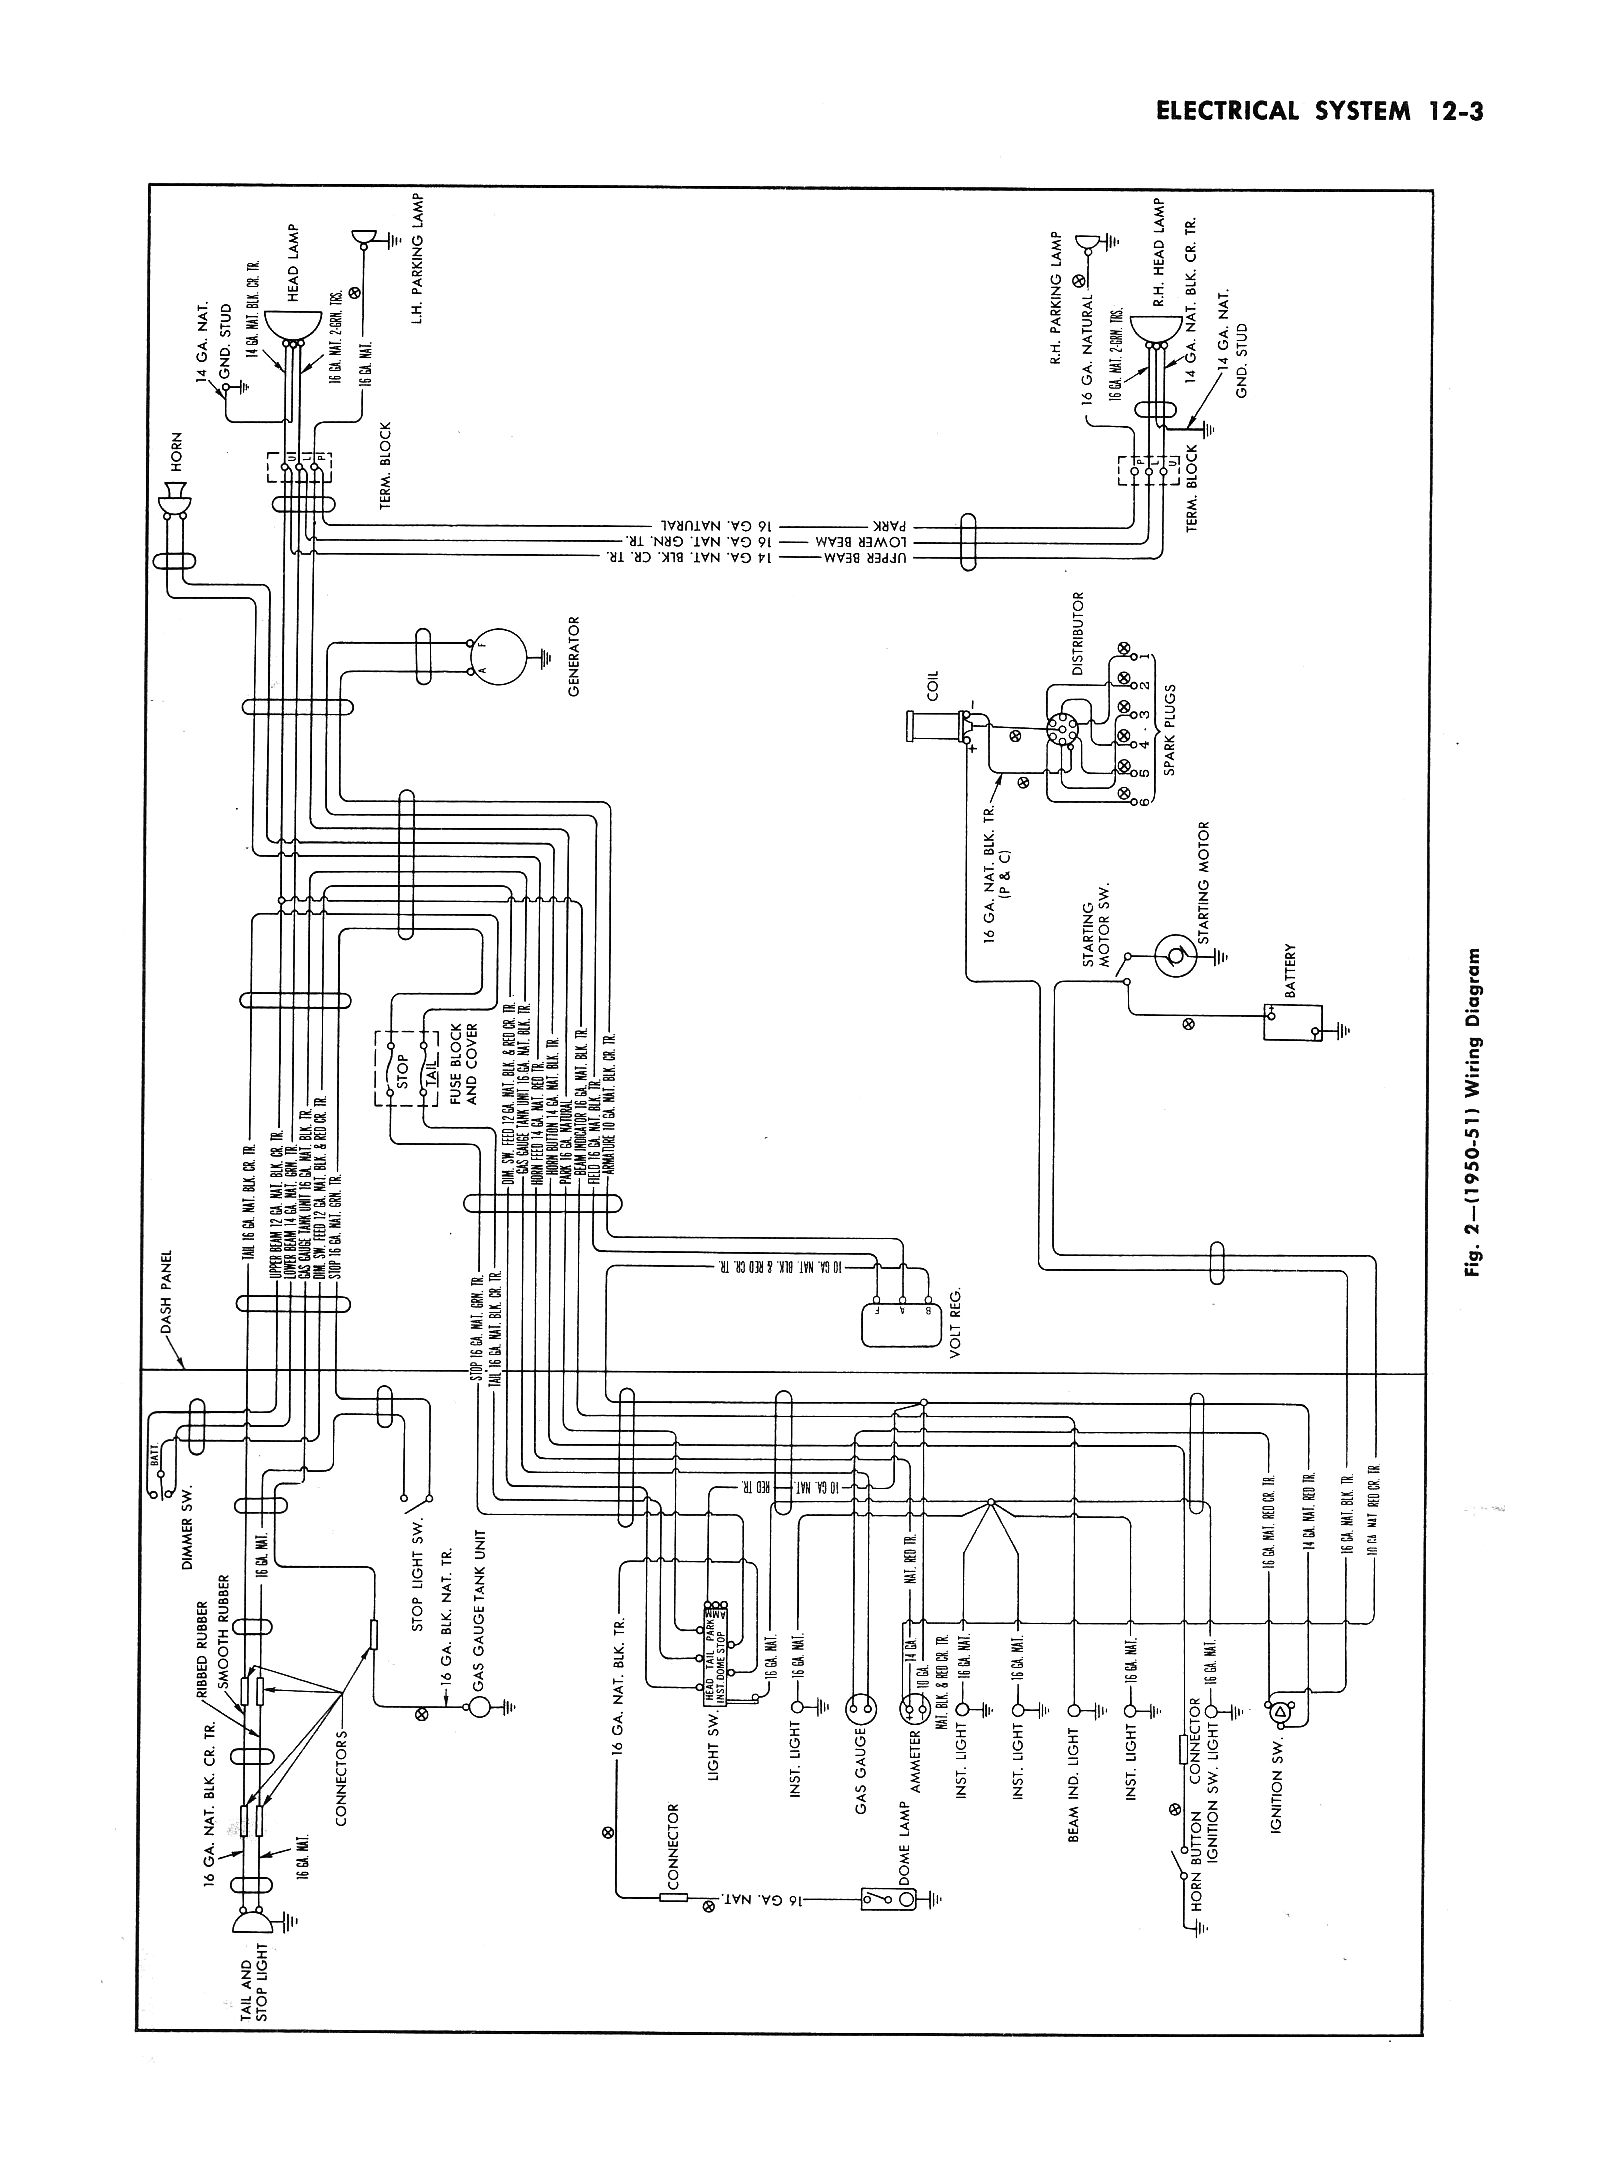 Chevy Wiring Diagrams Light Switch With Schematic 1950 Truck